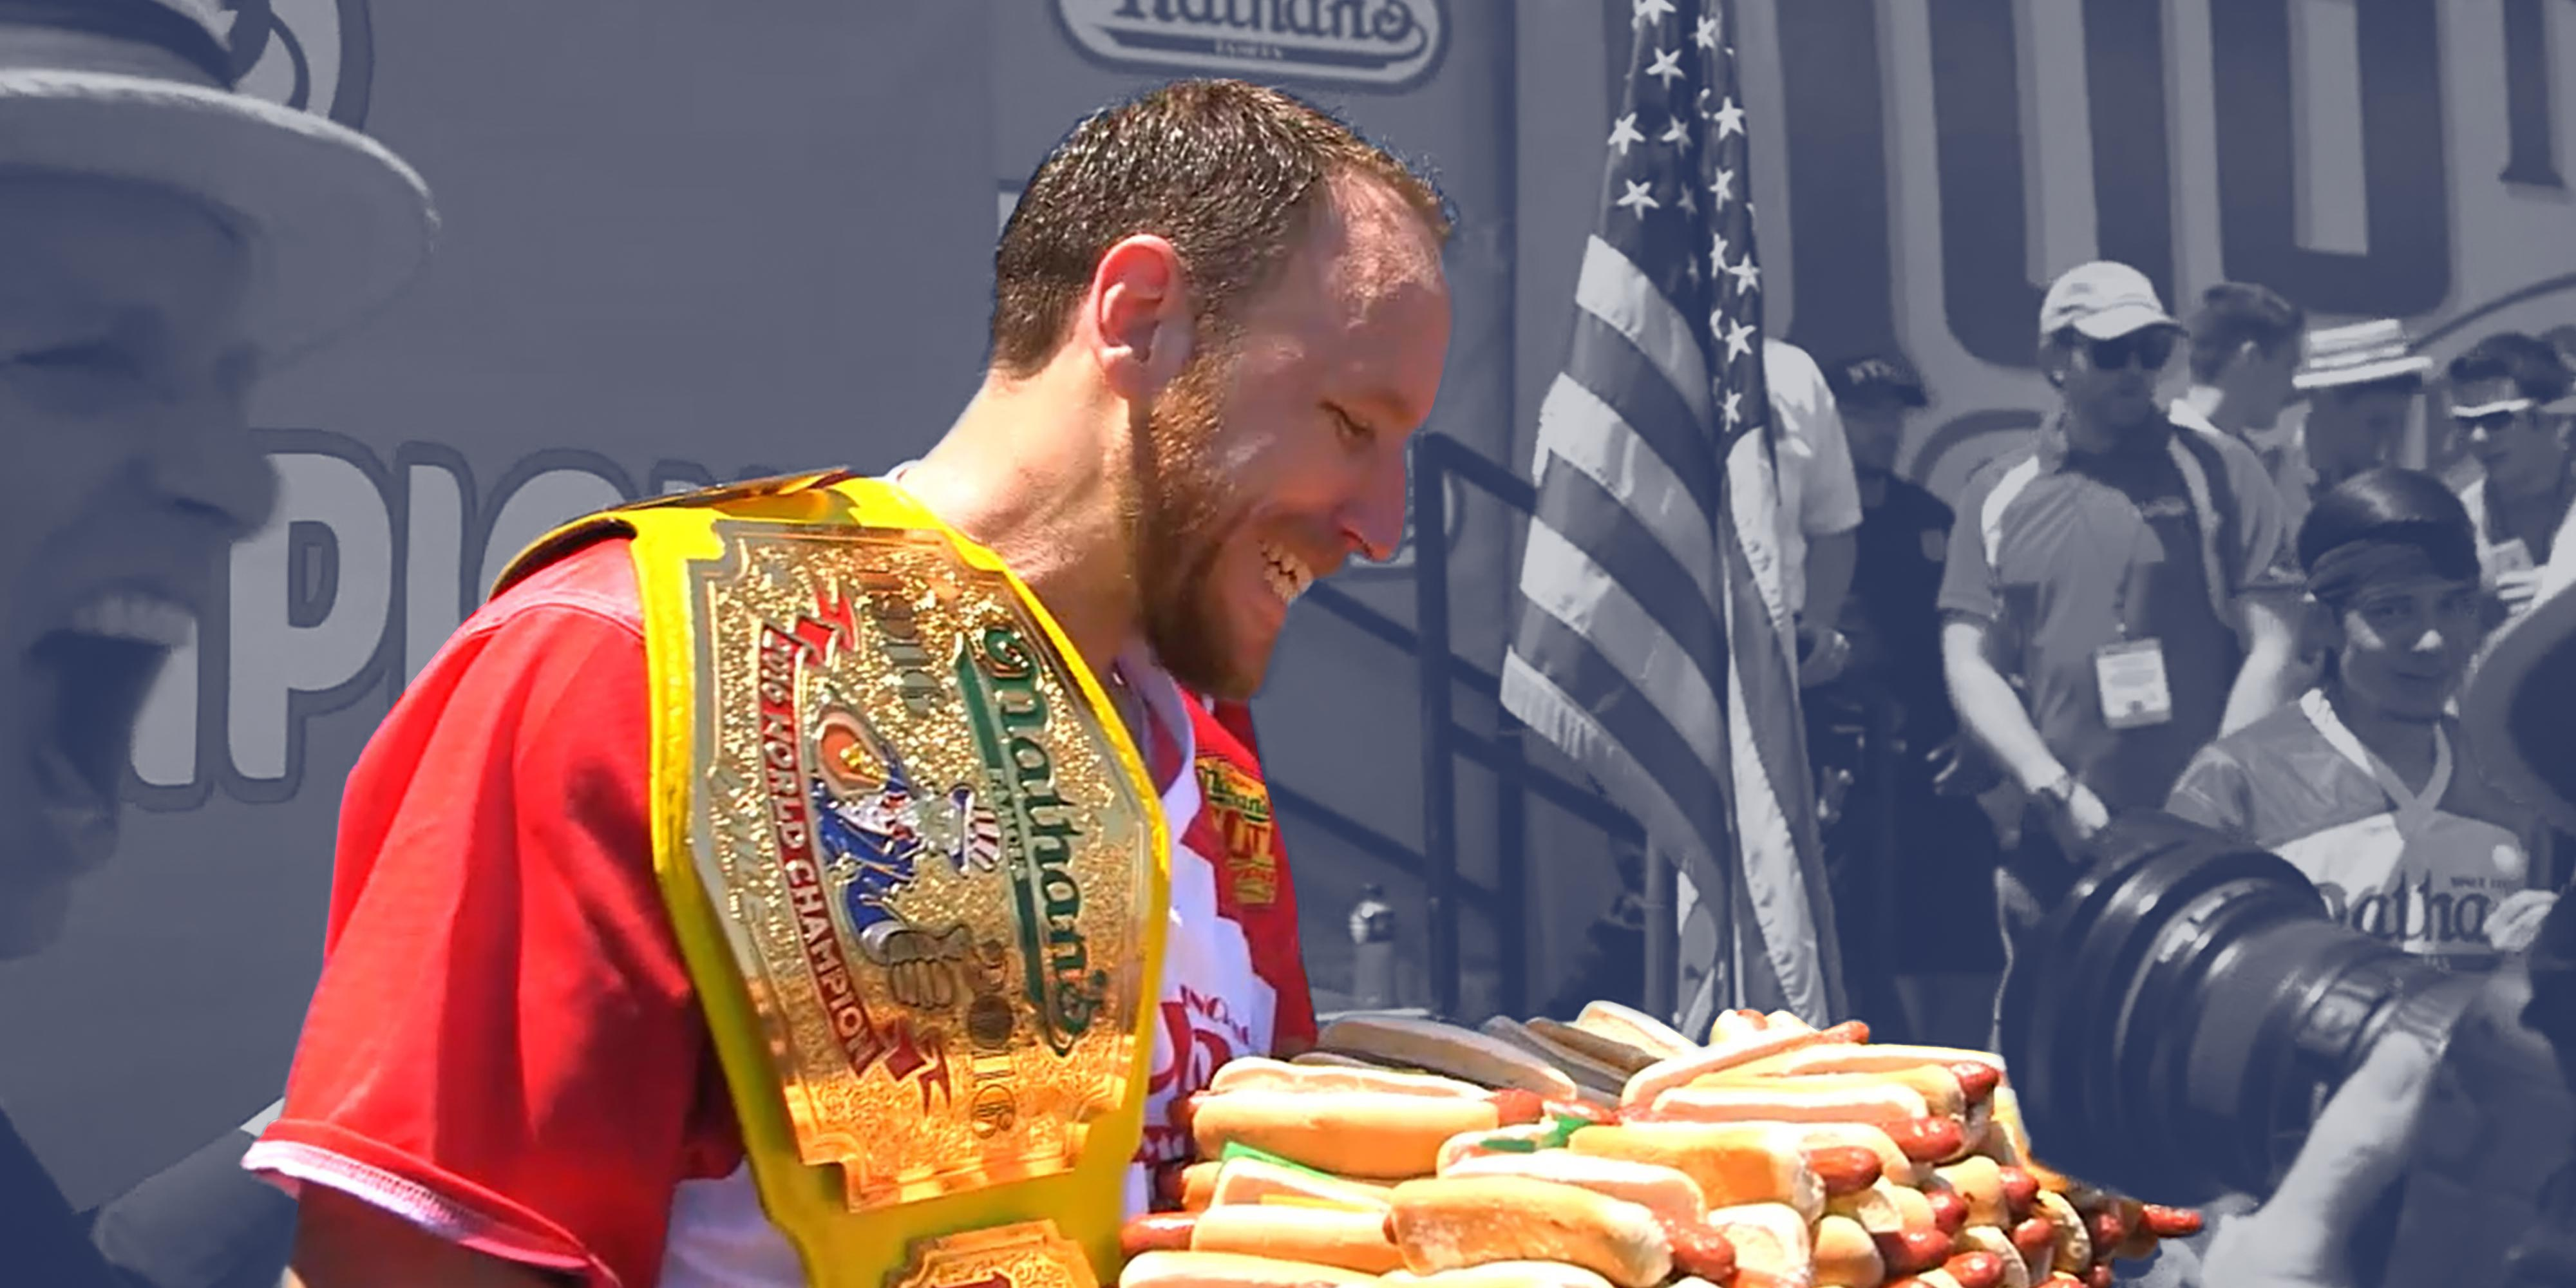 Joey Chestnut Worlds Greatest Eater